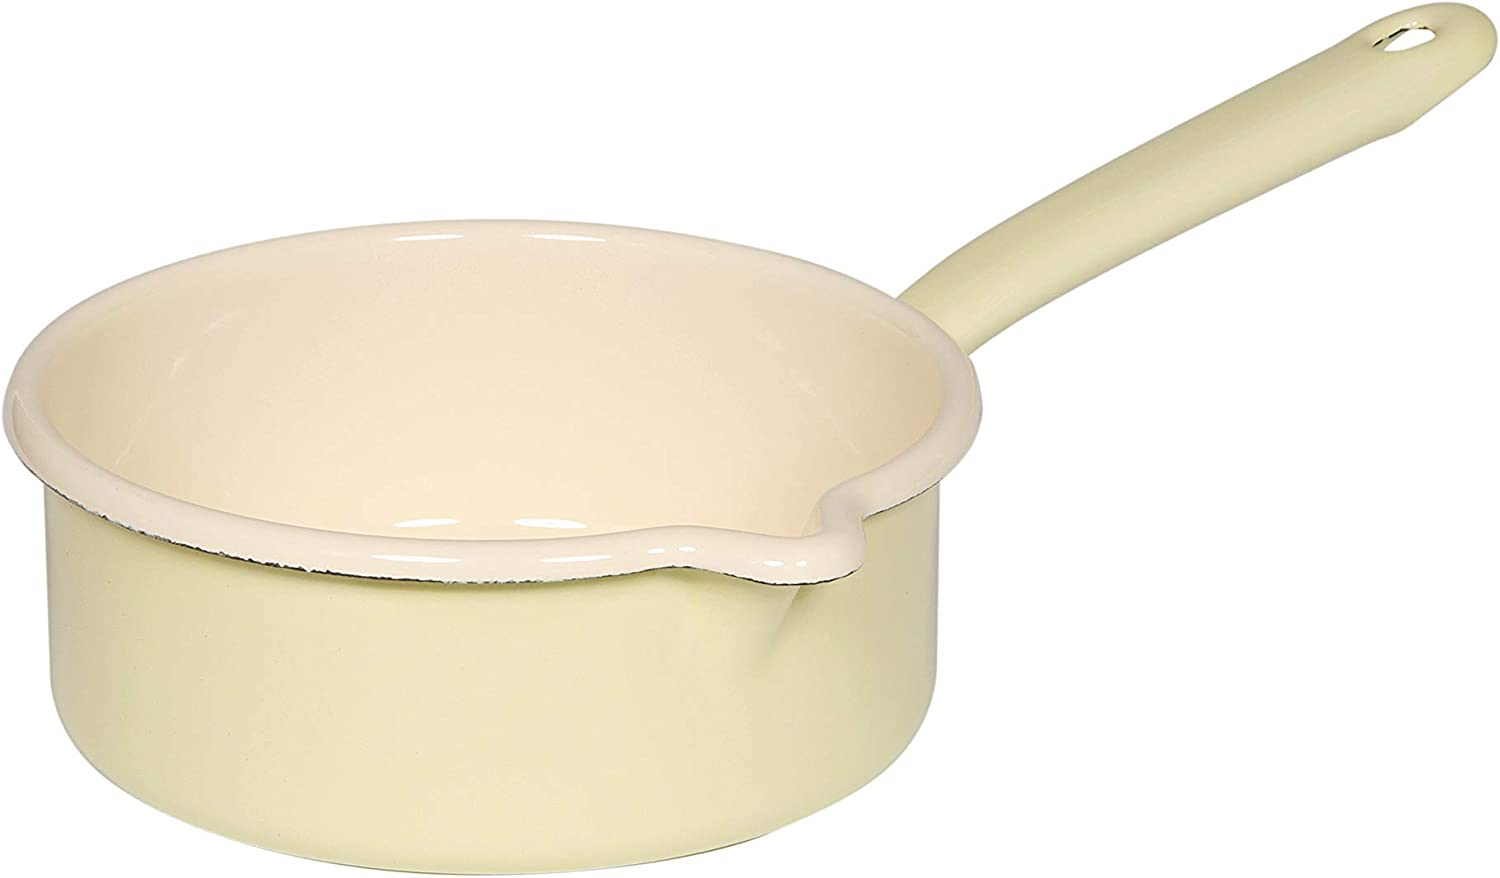 Riess Couvercle EMAUX EMAILE topfeckel Casserole couvercle avec chromrand 16 cm